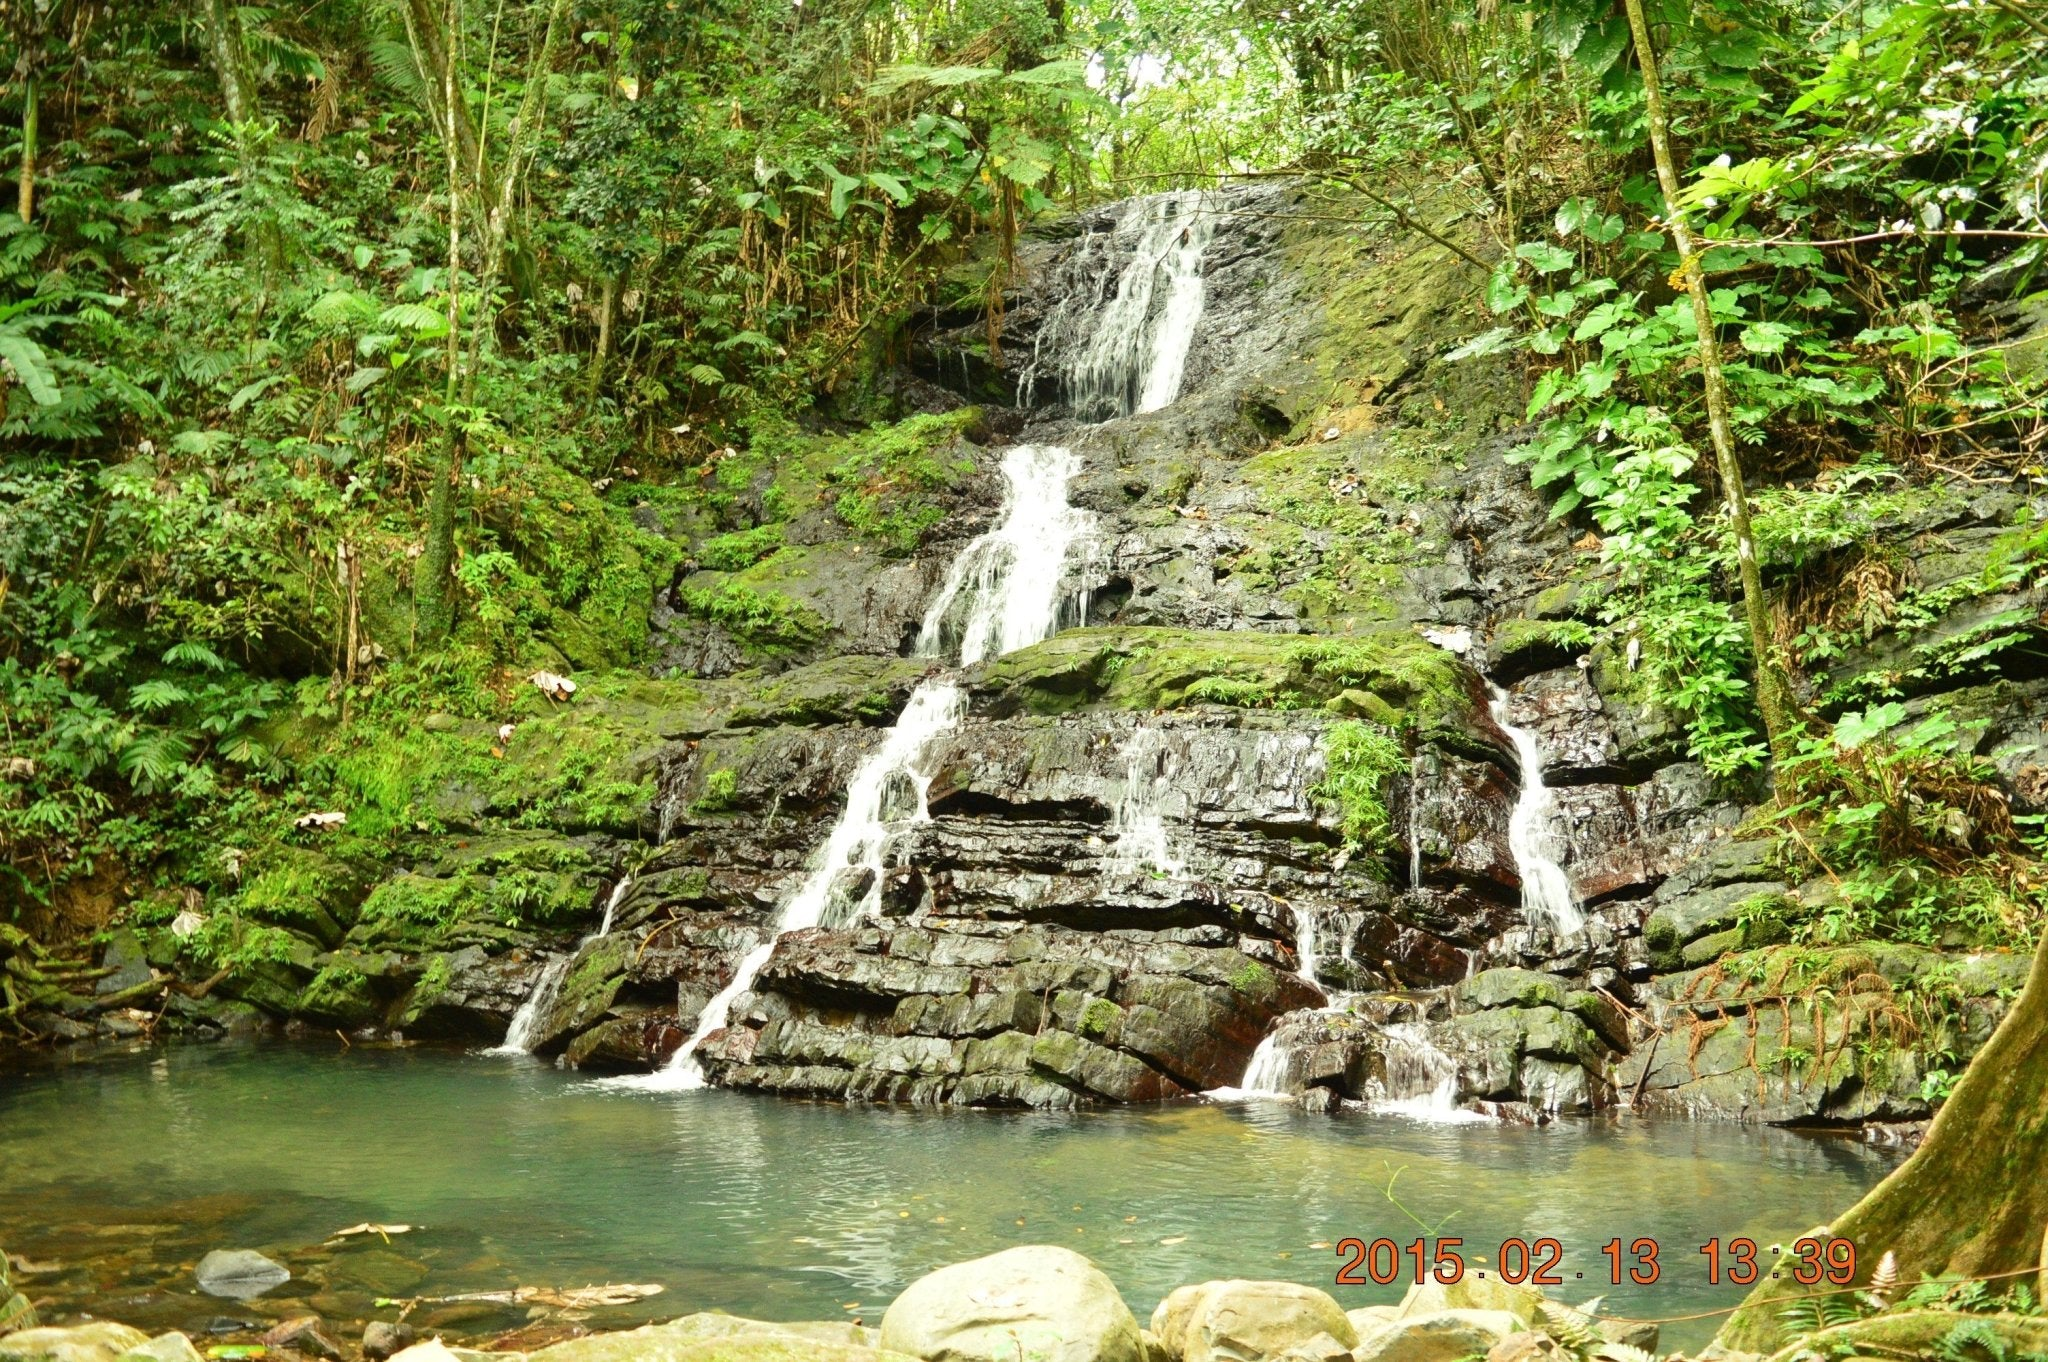 Common question - What can I do in El Yunque - Option#2